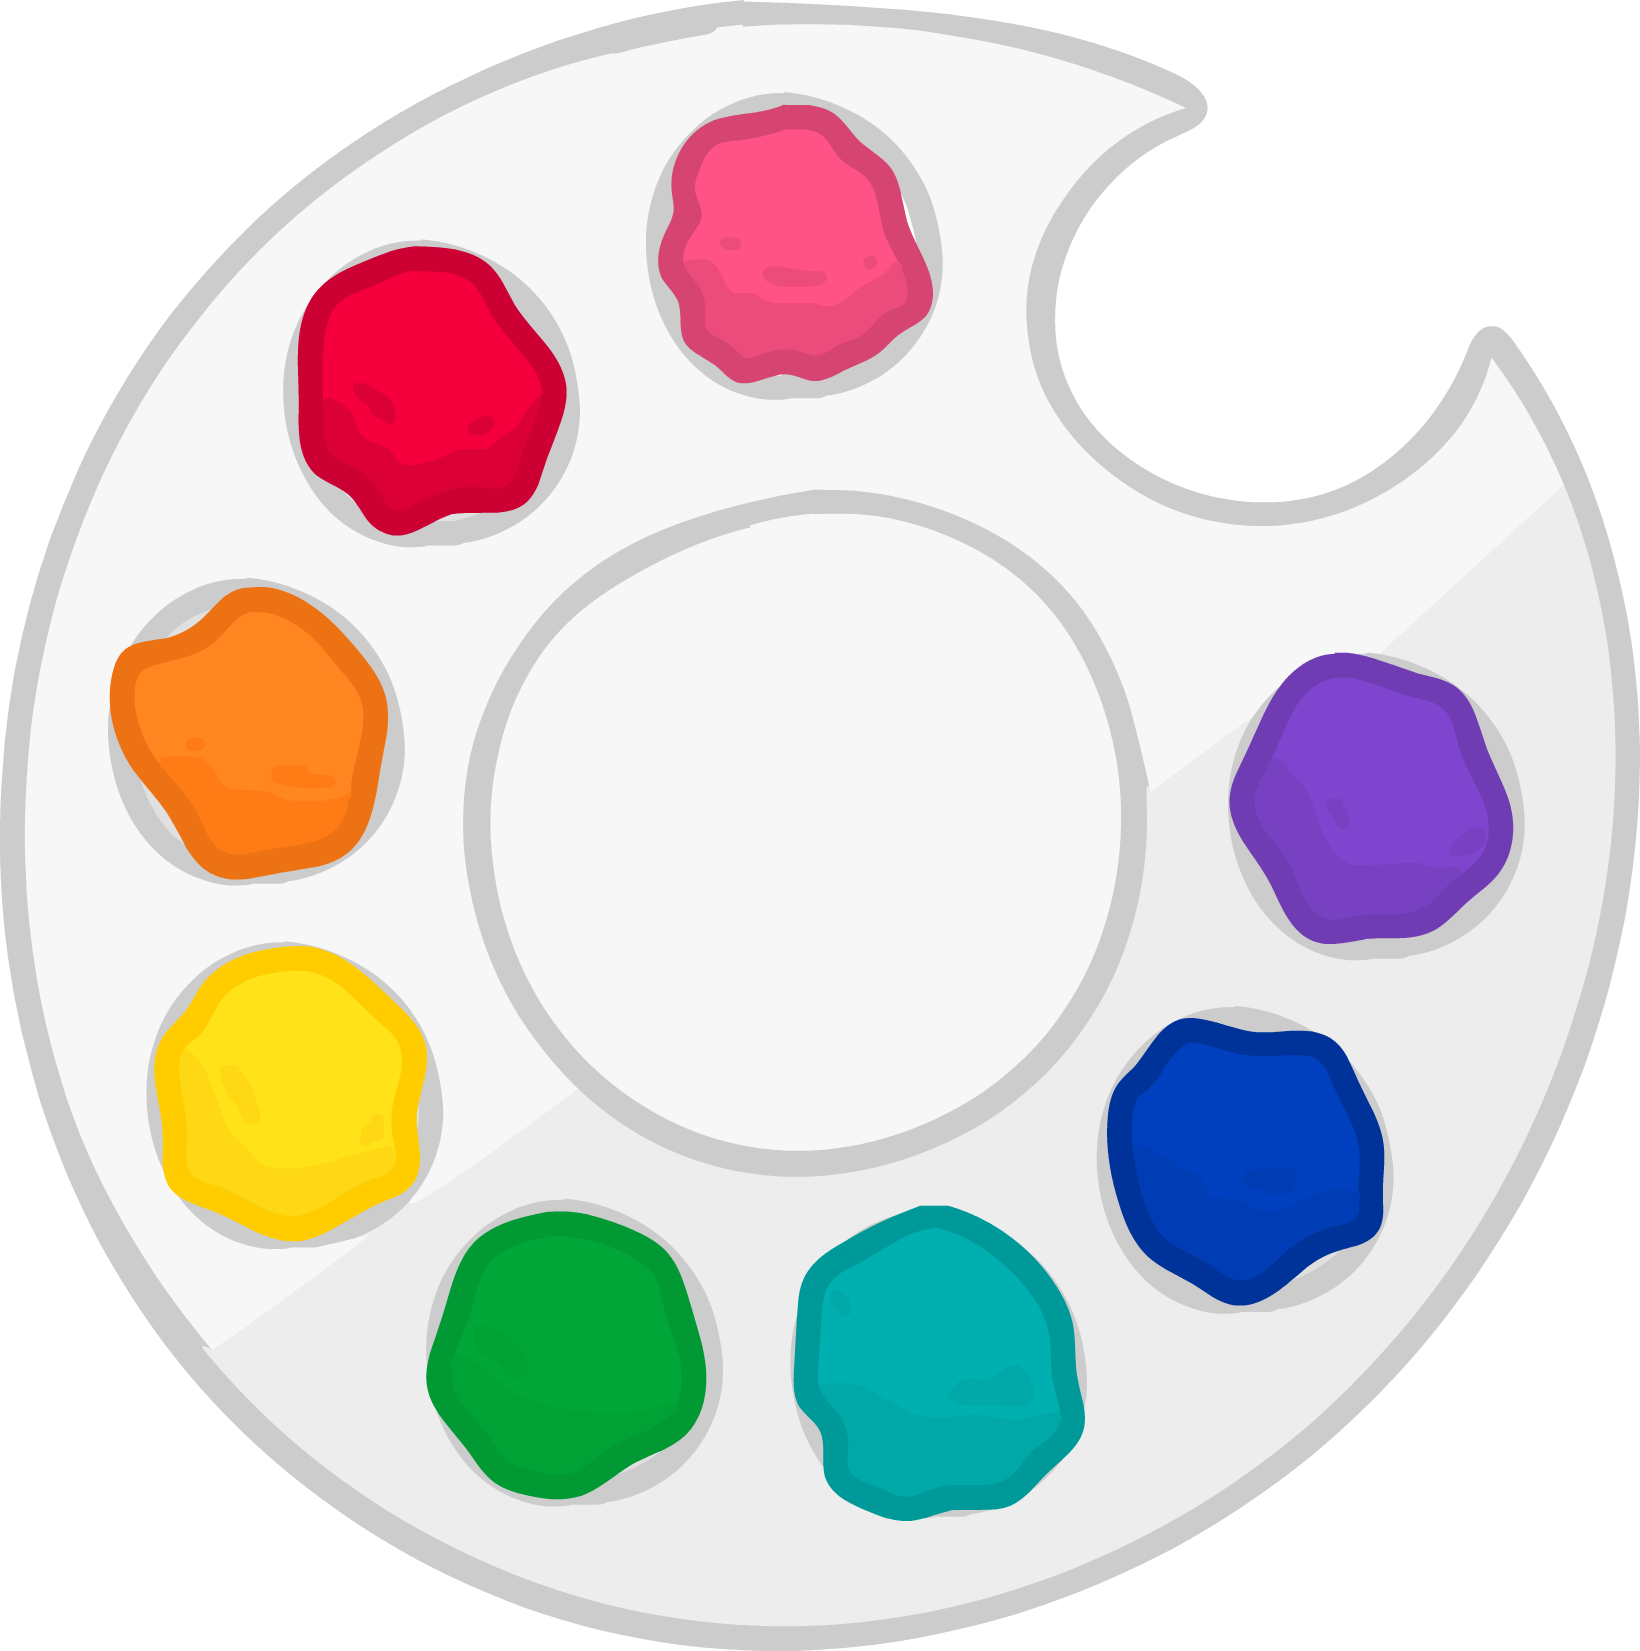 Paint palette png. Image object lockdown wiki